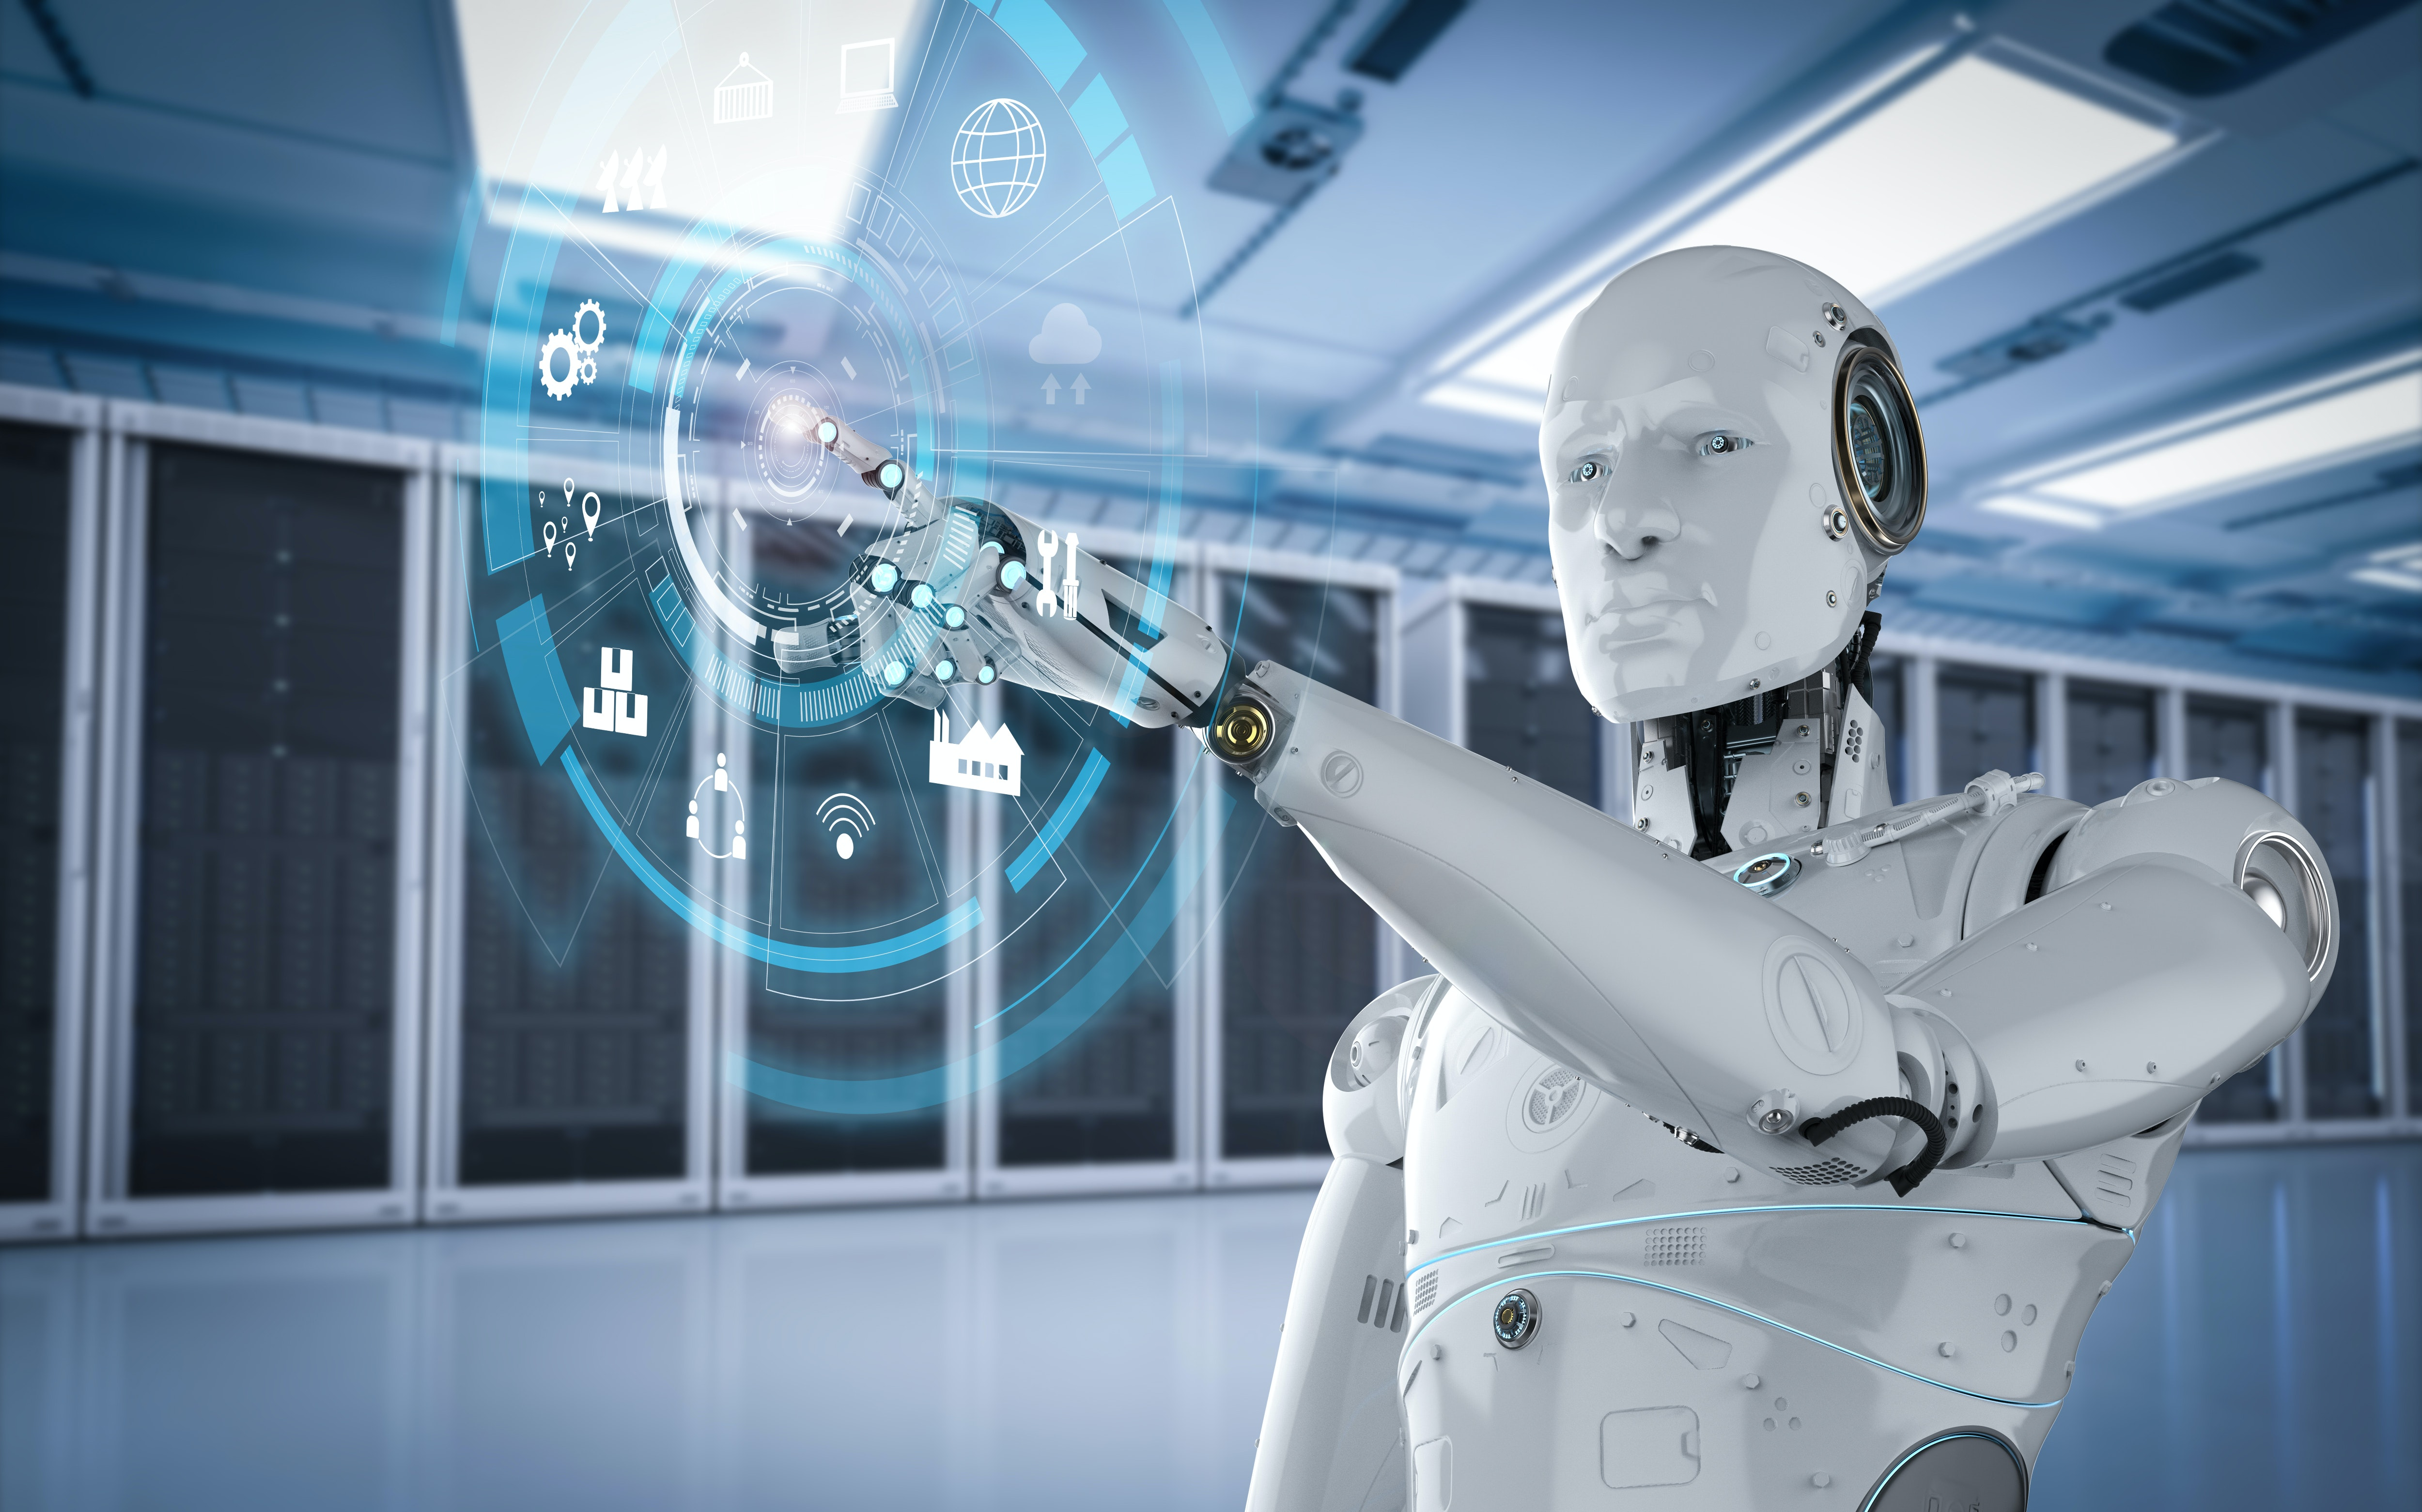 Worried about AI taking over the world? You may be making some rather unscientific assumptions